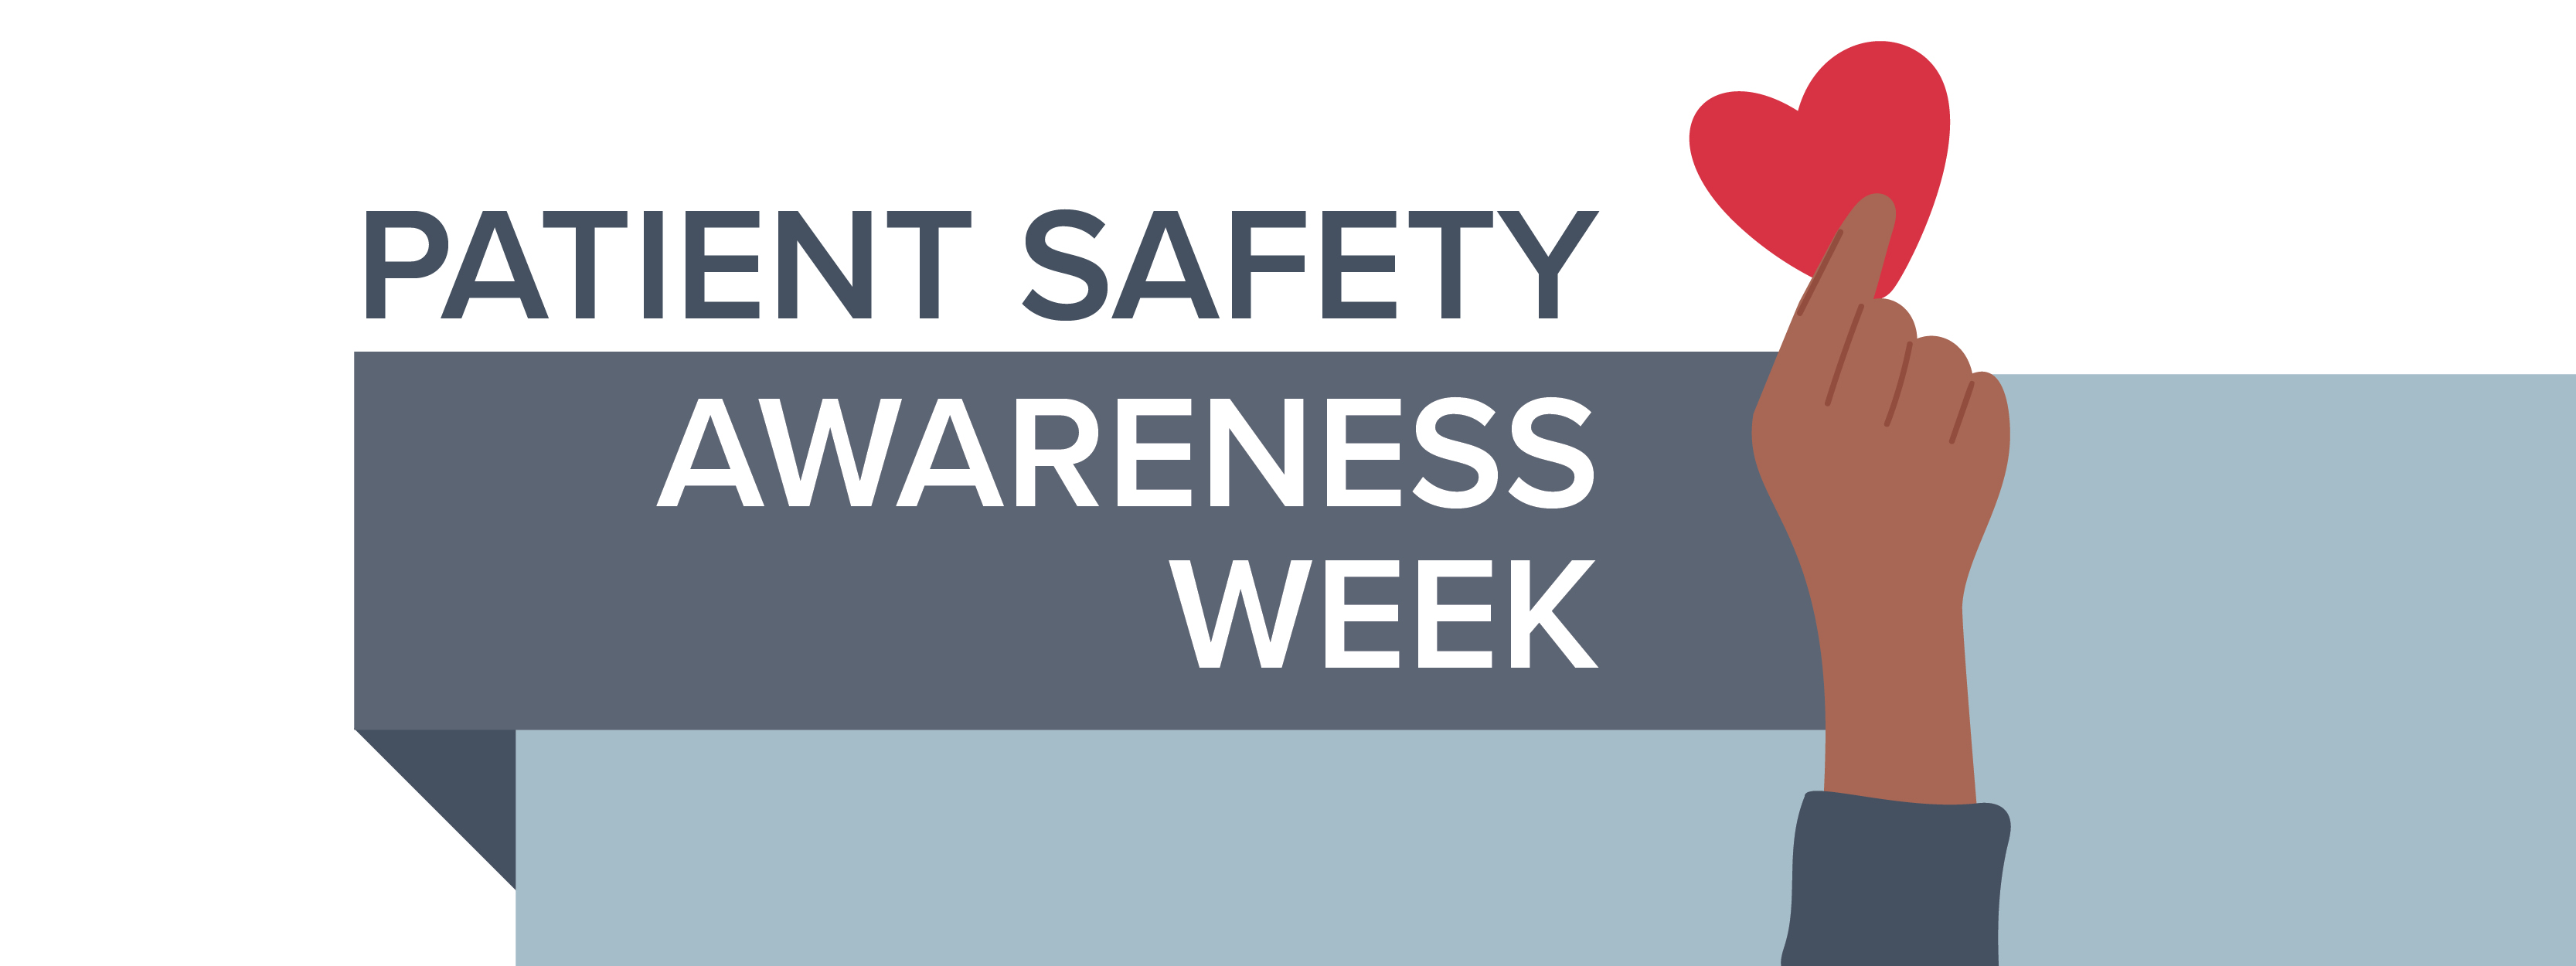 3B_Scientific_21-03_Banner_Patient_Safety_Awareness_Week_OVERVIEWLARGE.jpg